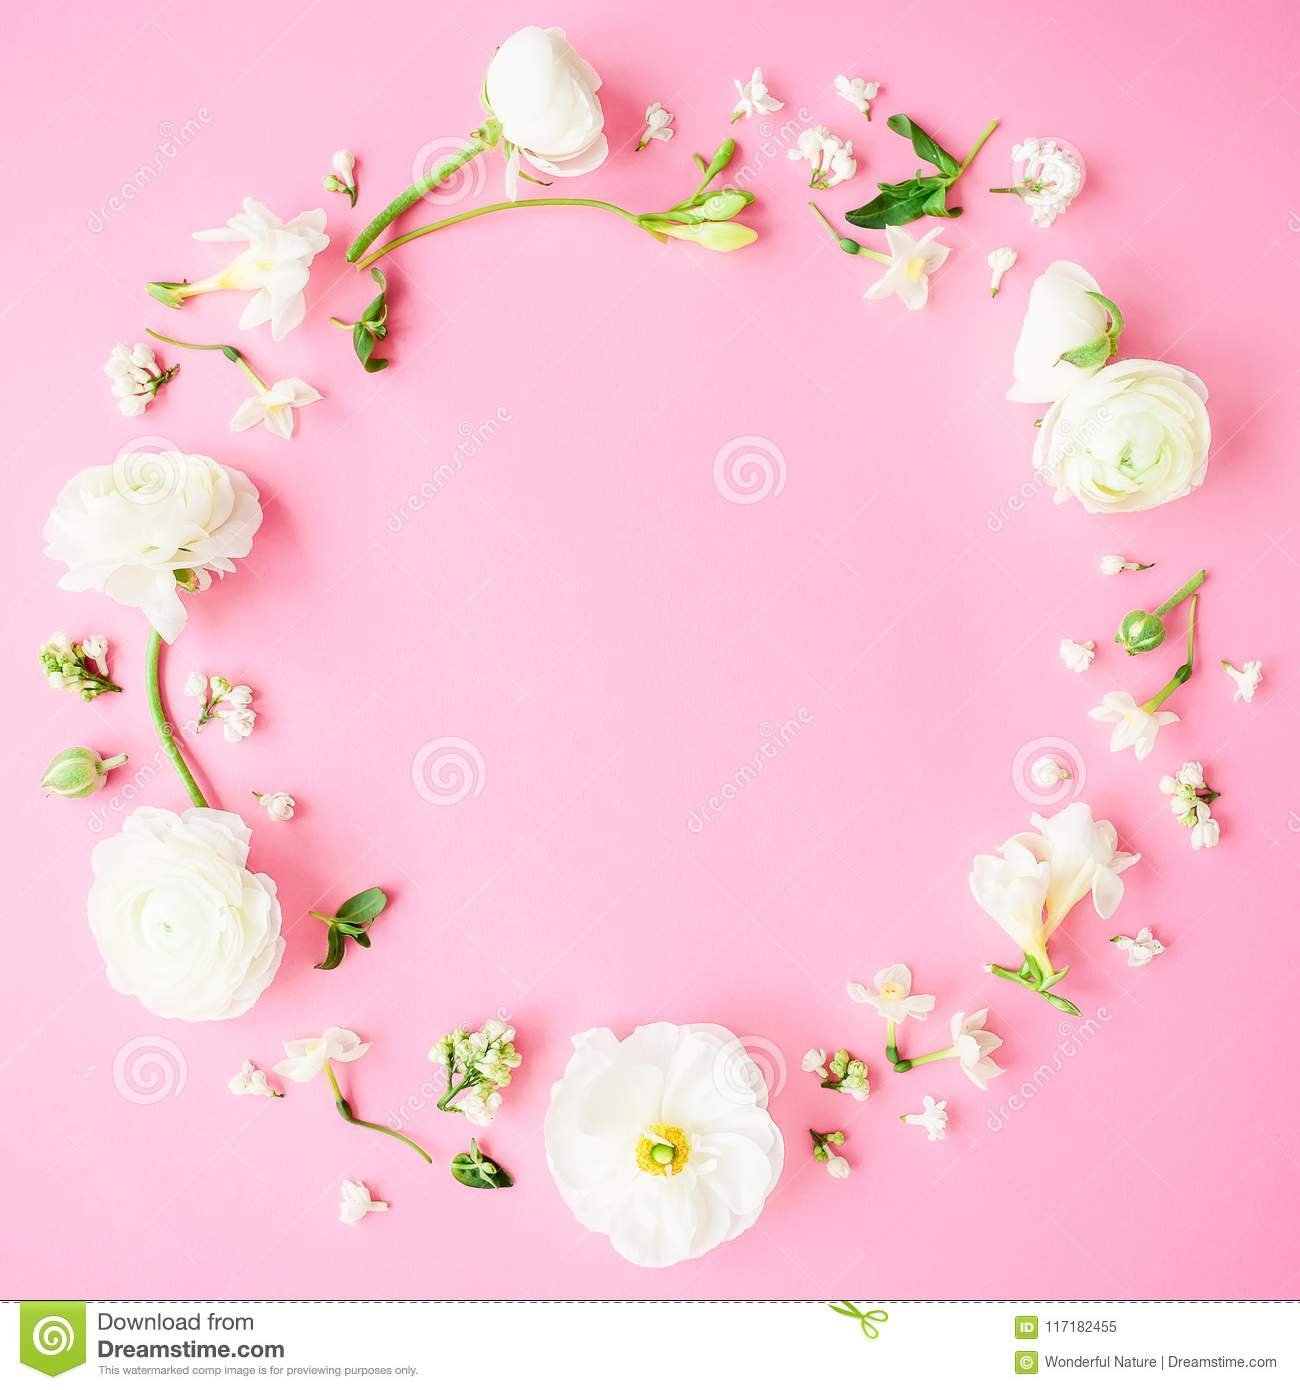 Floral Round Frame Made Of White Flowers Buds And Petals On Pink Background Flat Lay Top View Pastel Background Stock Image Image Of Flowers Decor 117182455